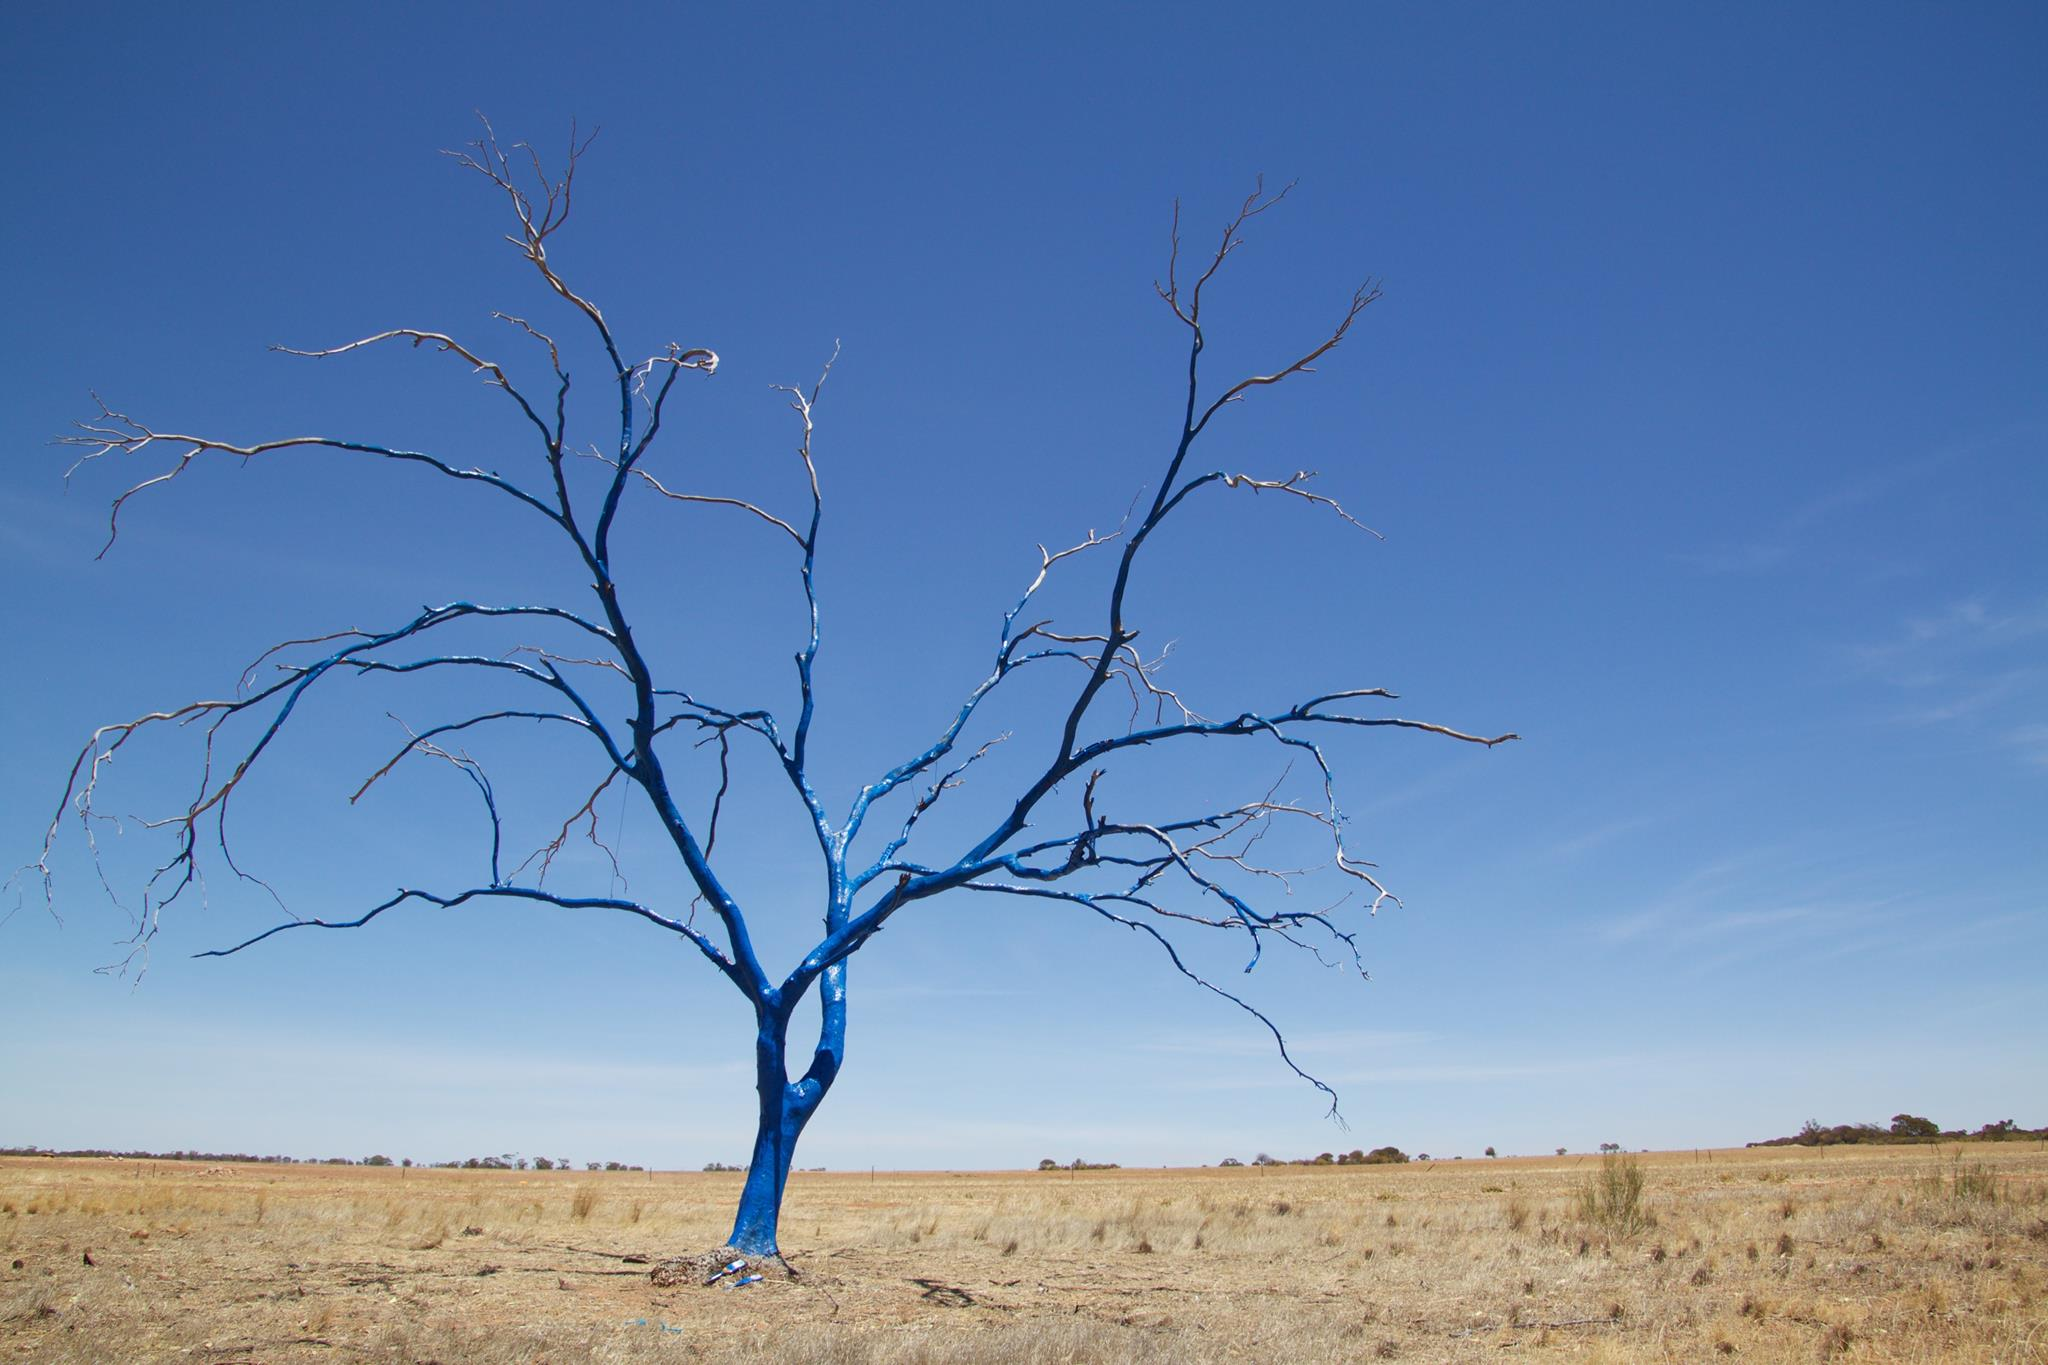 Image of a dead tree painted blue standing in barren dry paddock.